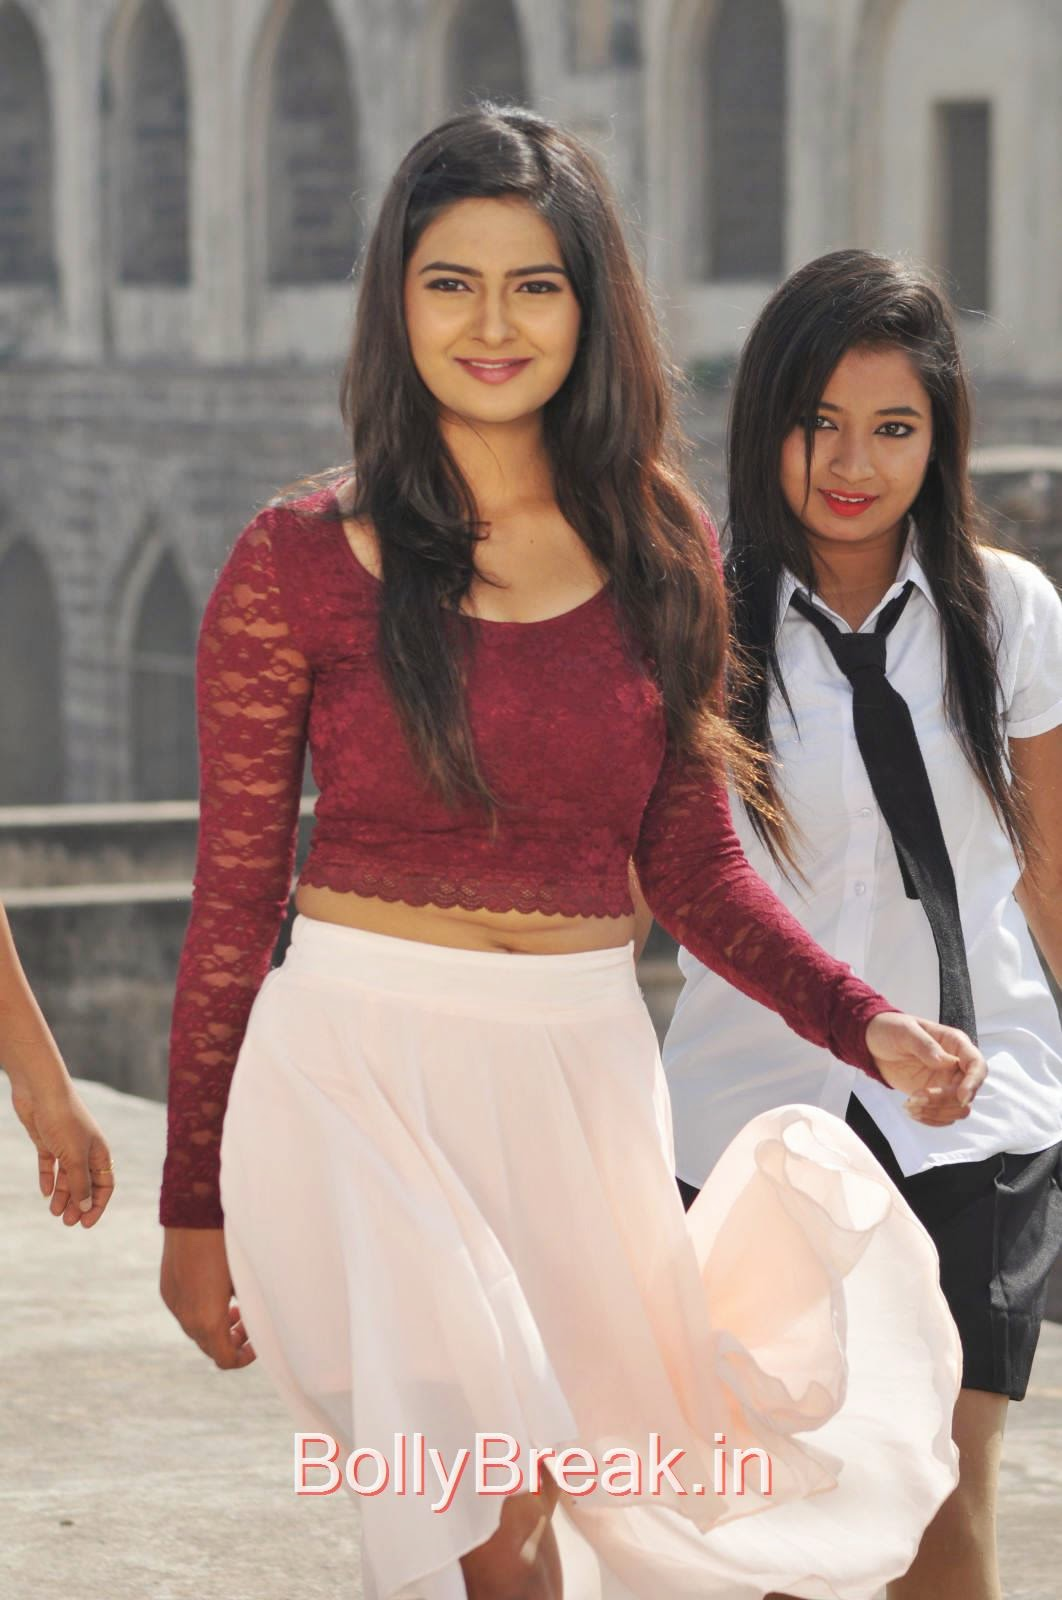 Neha Deshpande Stills in Maroon Top From The Bells Movie, Actress Neha Deshpande Hot HD Stills from The Bells Movie